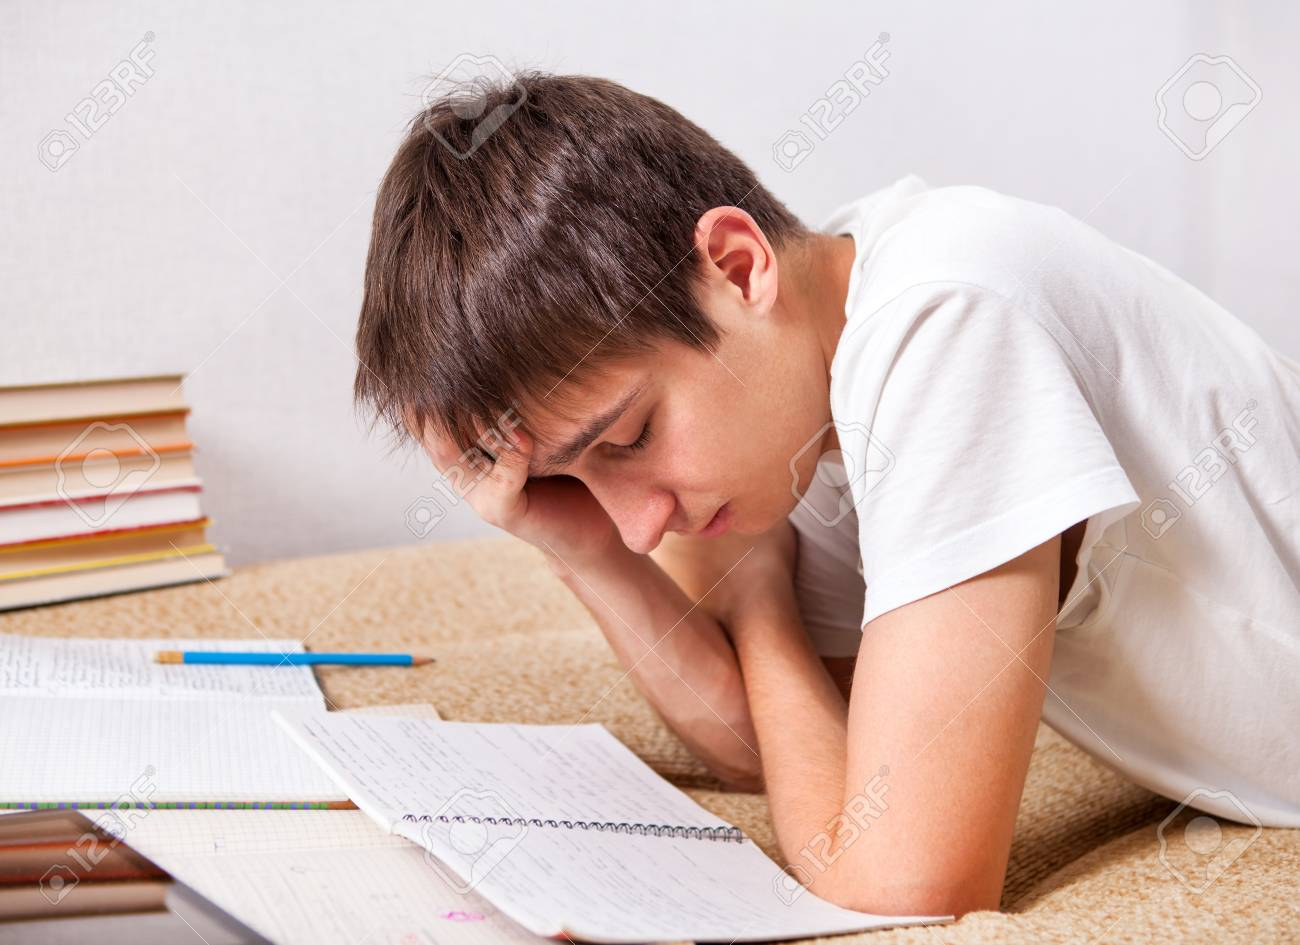 Tired Student Doing Homework On The Sofa Stock Photo, Picture And ...